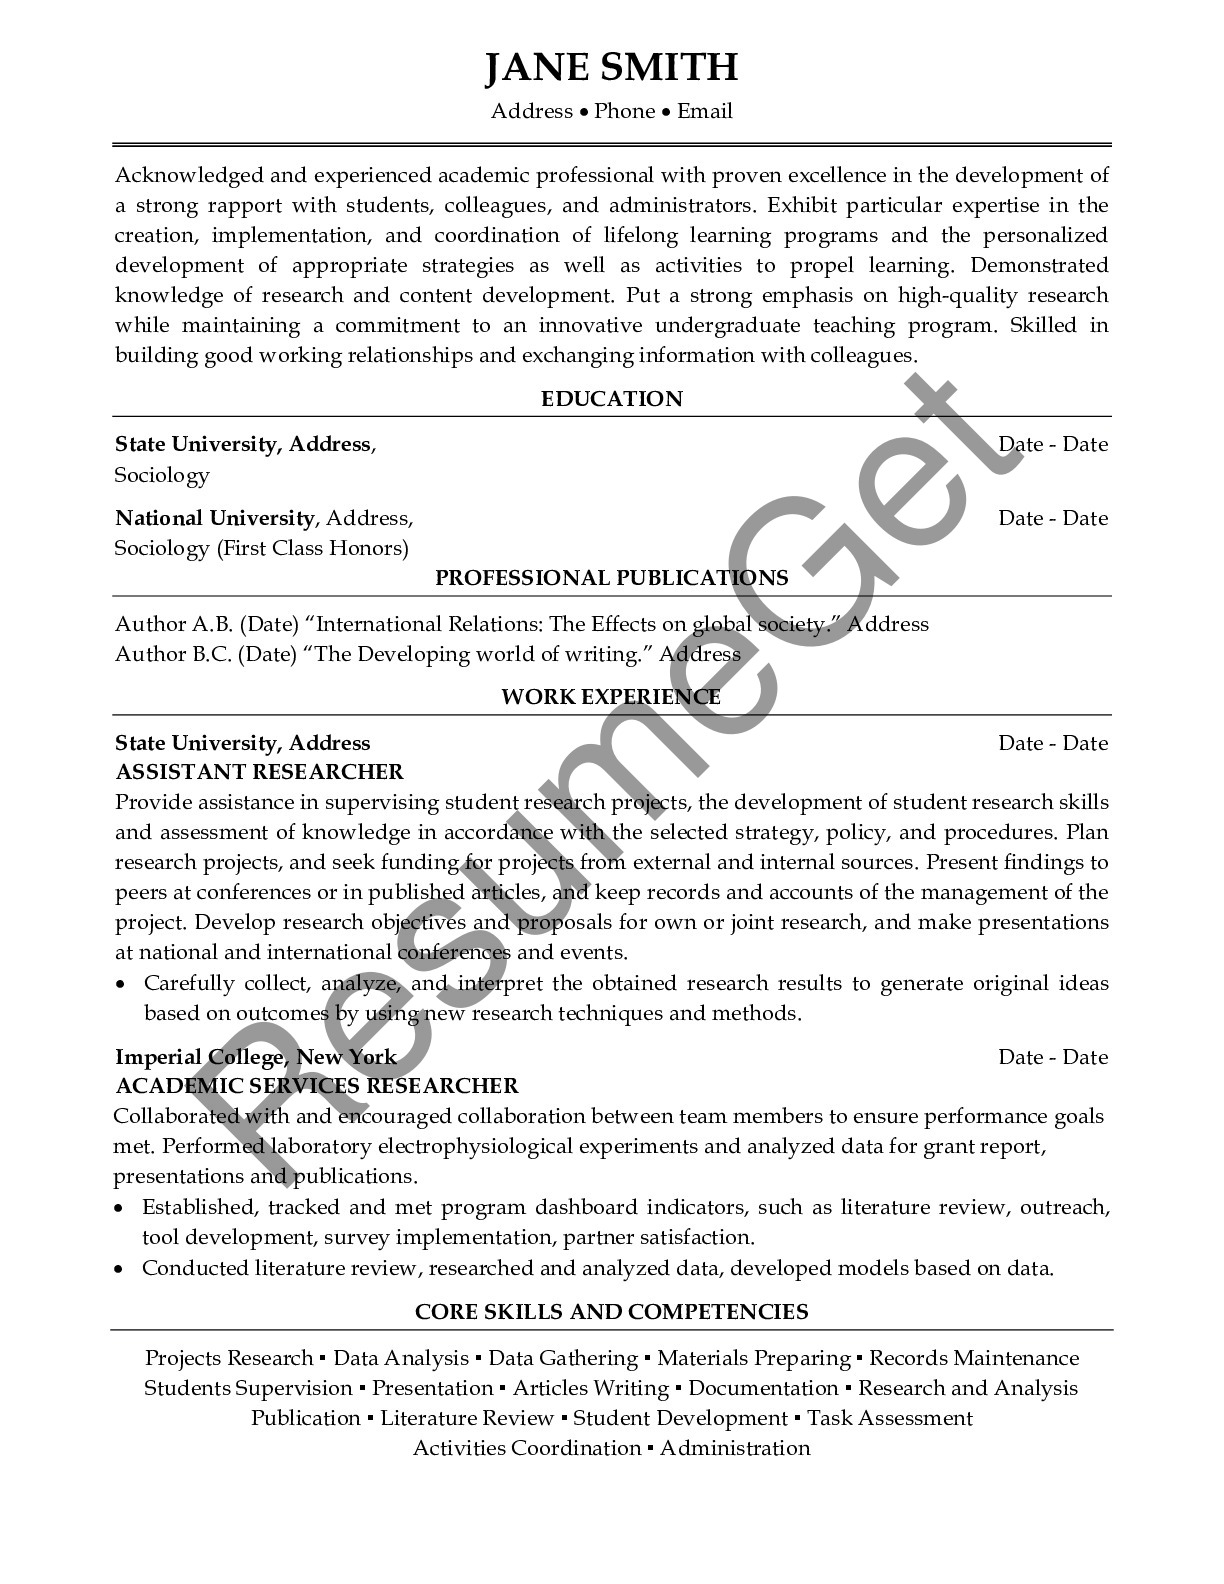 CV Example for Academic Professional